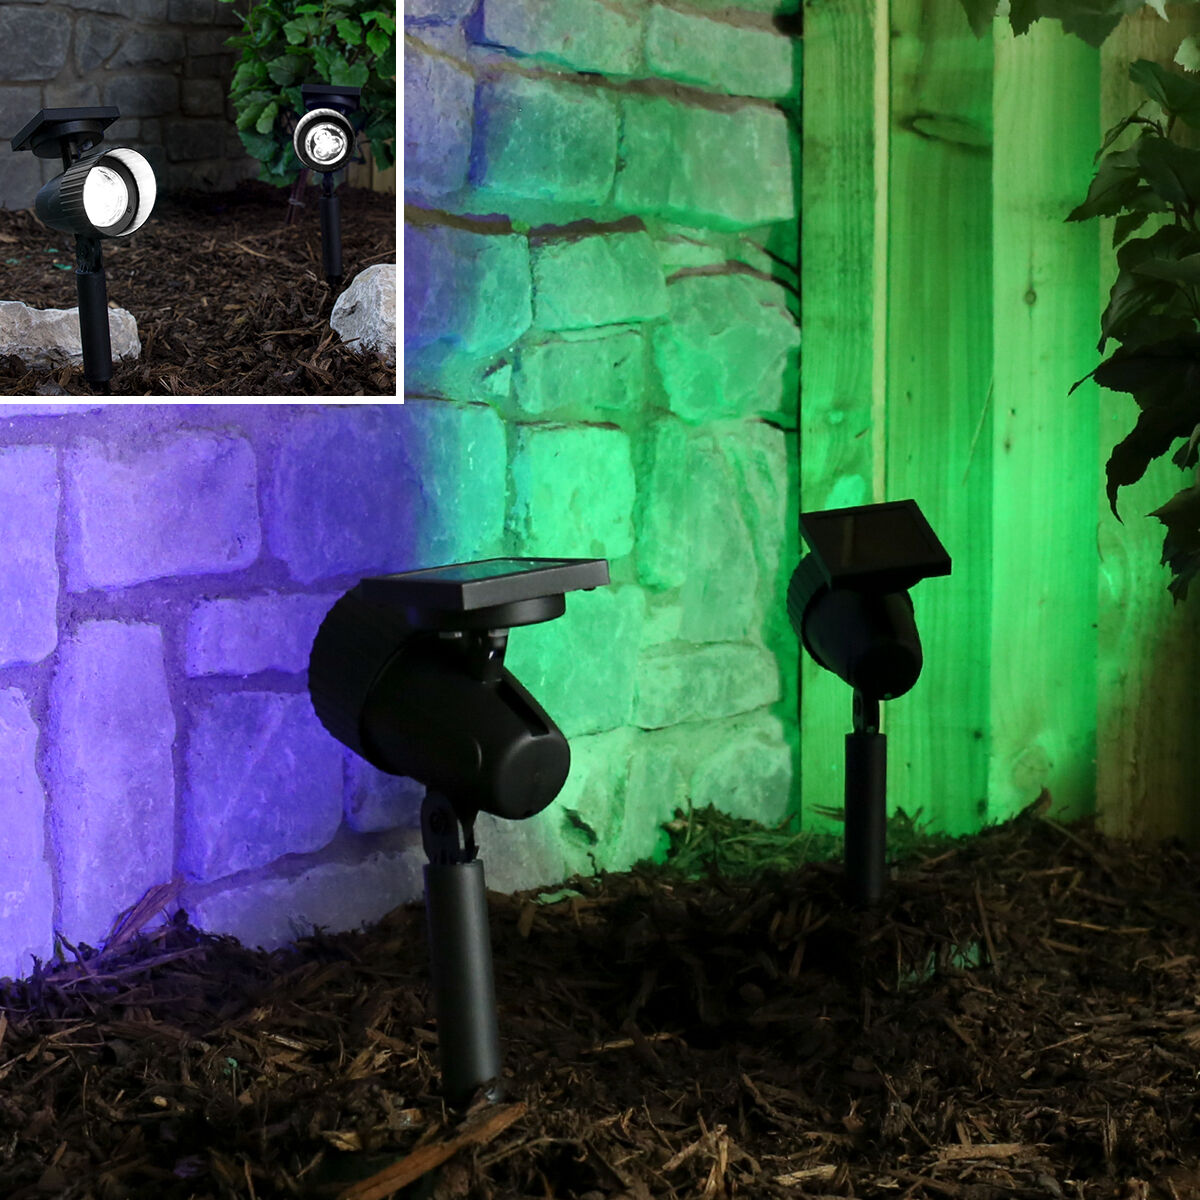 Outdoor Solar Lights Ireland: 2 COLOUR CHANGING & White Led Solar Outdoor Garden Party